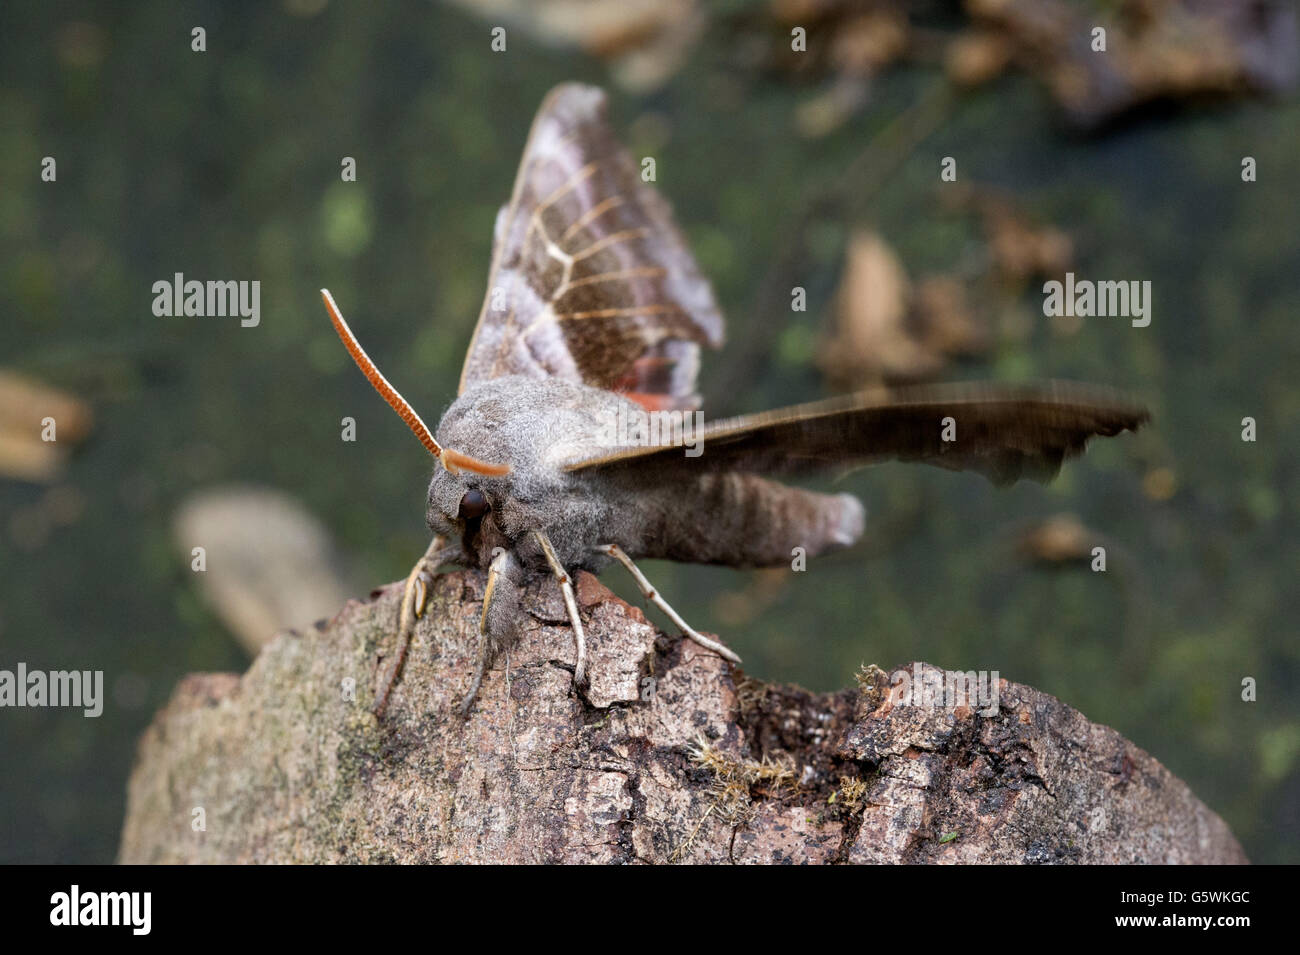 A Poplar Hawk Moth (Laothoe populi) with its wings spread while resting on an old tree branch - Stock Image